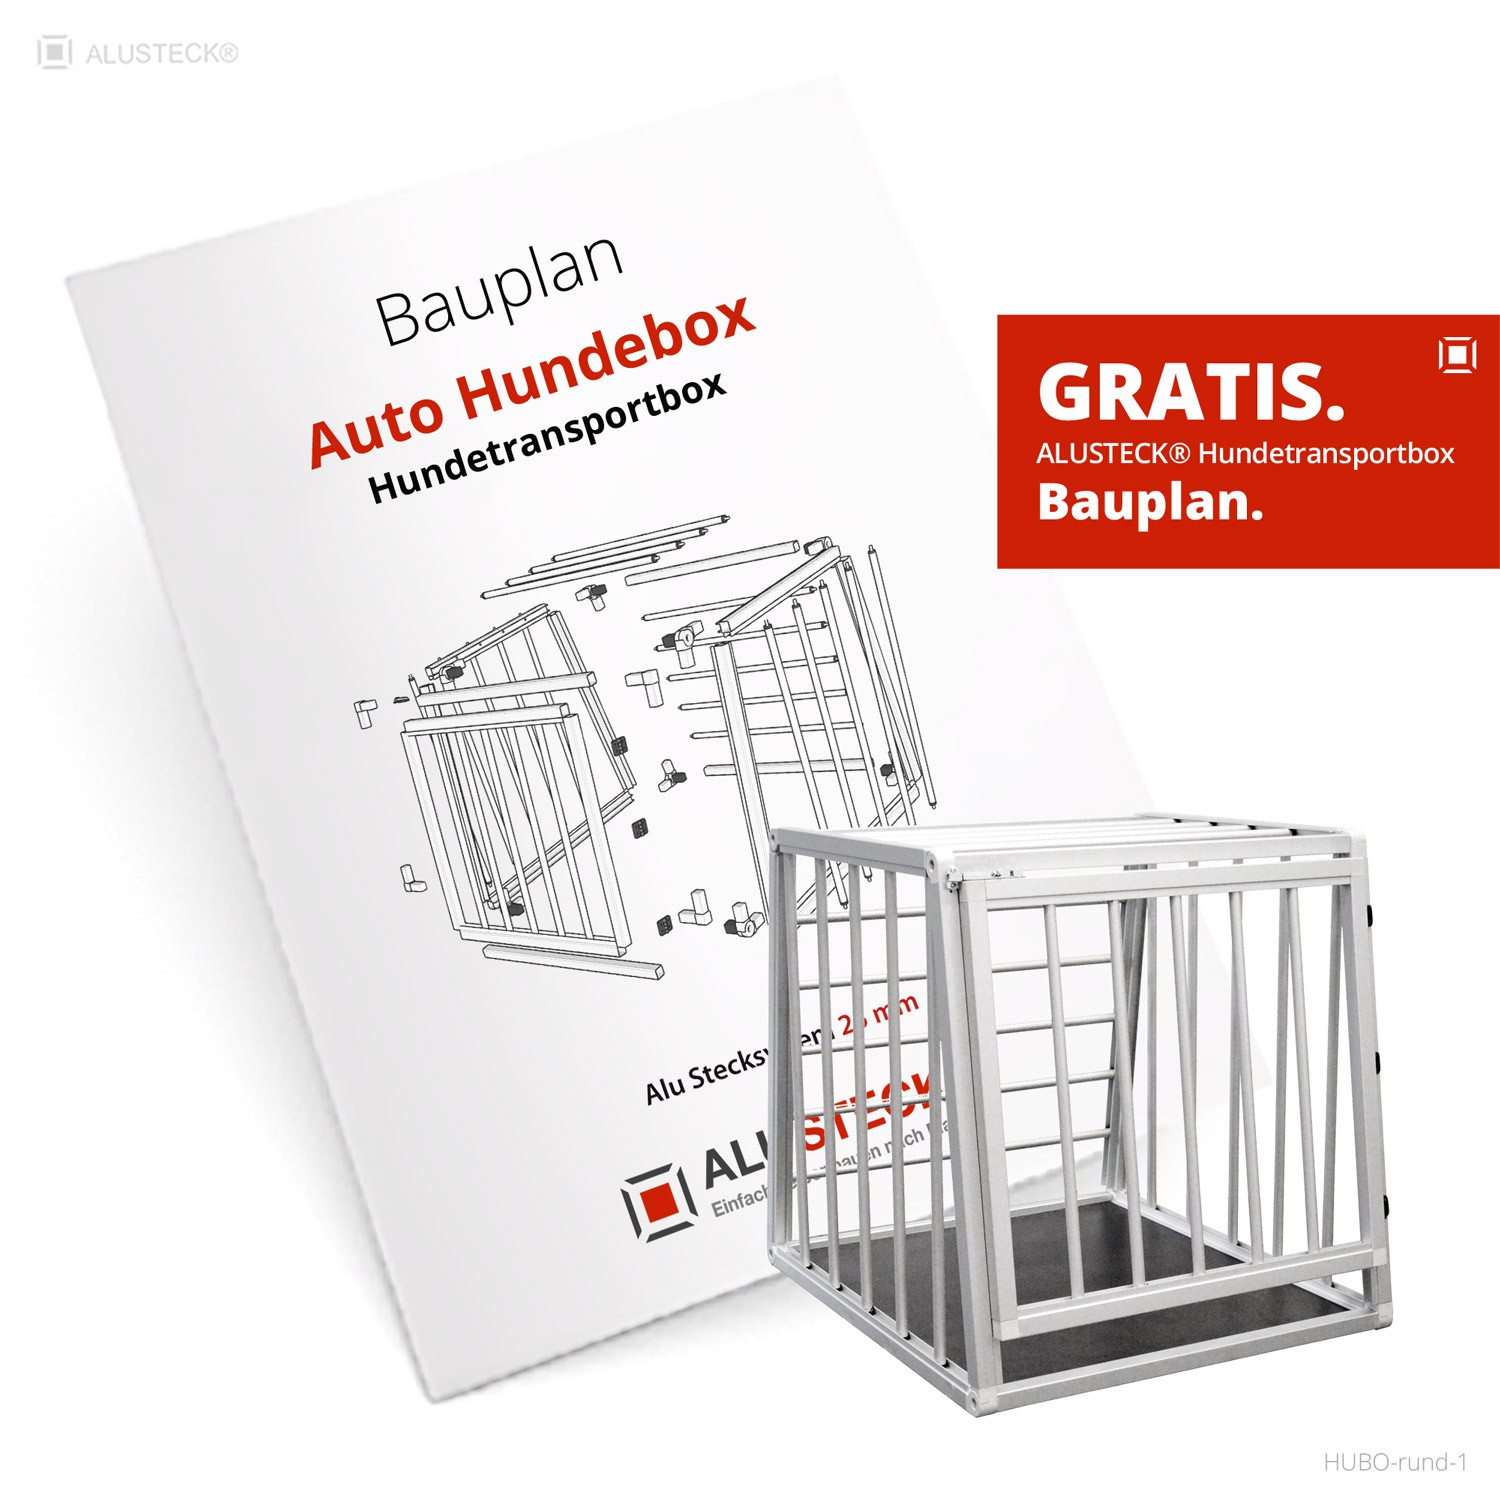 hundetransportbox bauplan auto hundebox 1 alusteck baupl ne. Black Bedroom Furniture Sets. Home Design Ideas